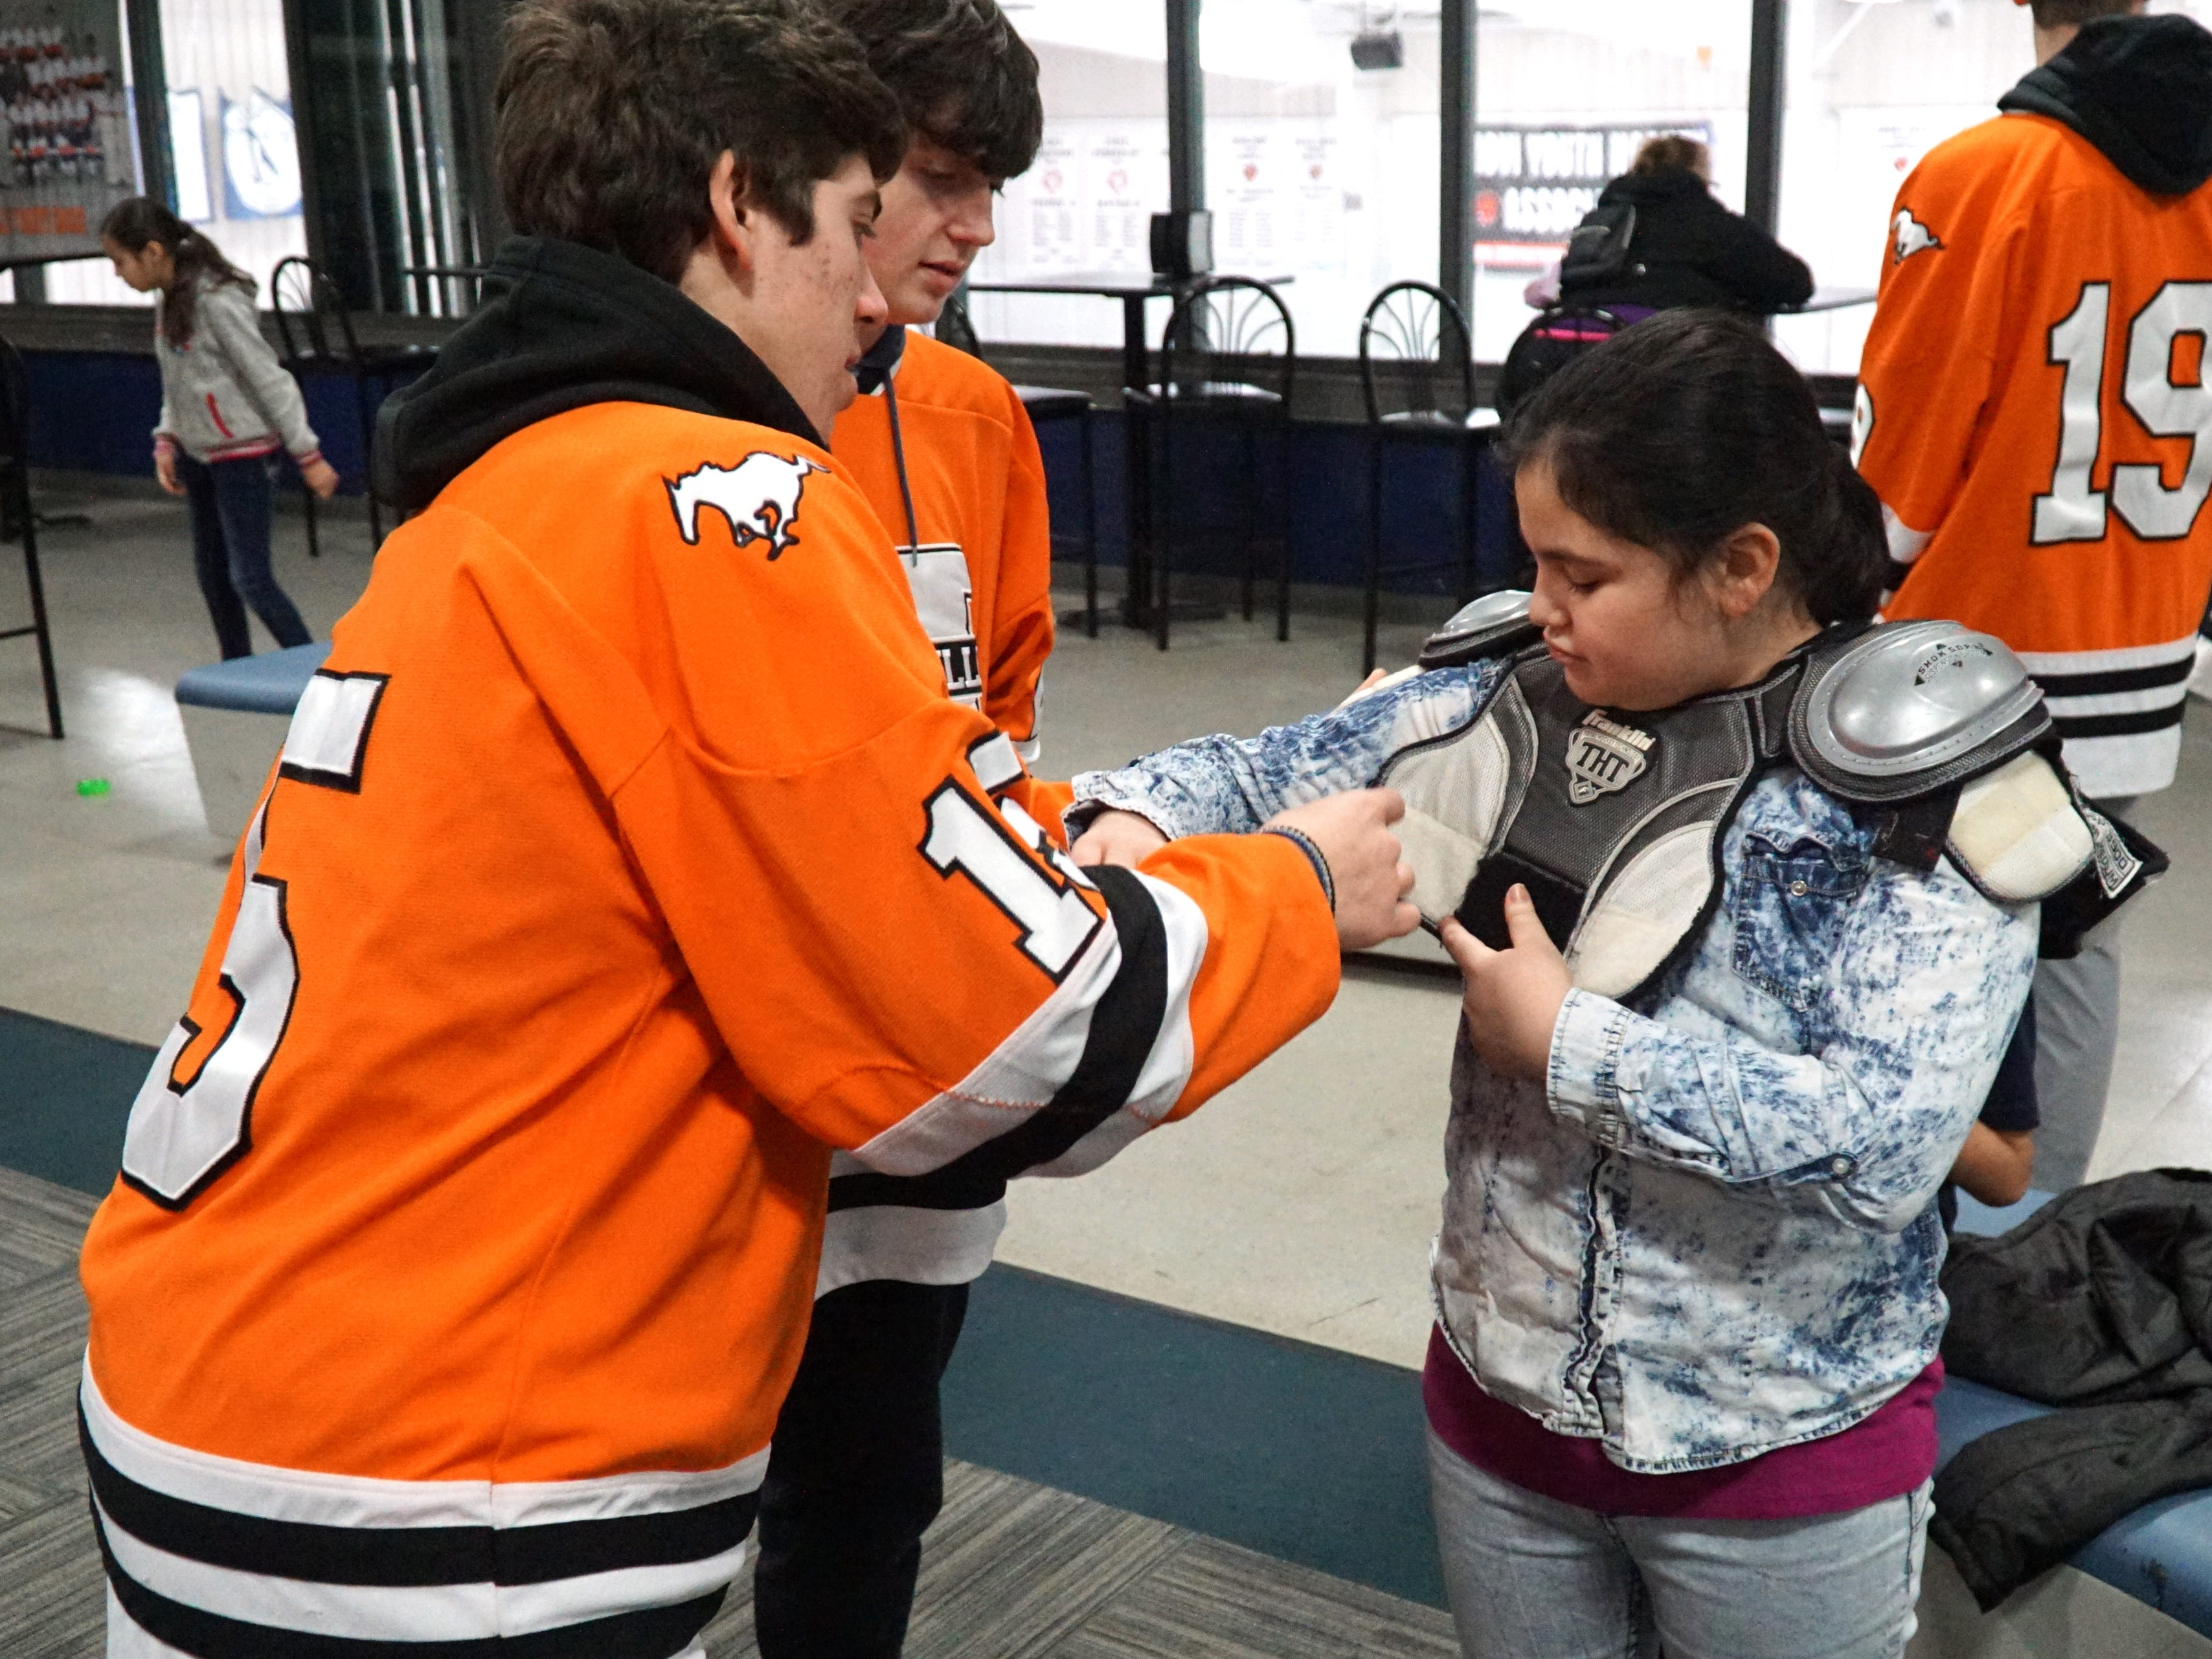 Northville varsity hockey team member Ilias Vrahnos helps to get Neinas Elementary's Maribel Madrigal, 10, into some shoulder pads as the visitors from Detroit see what it's like to get dressed for a hockey game on Feb. 13.